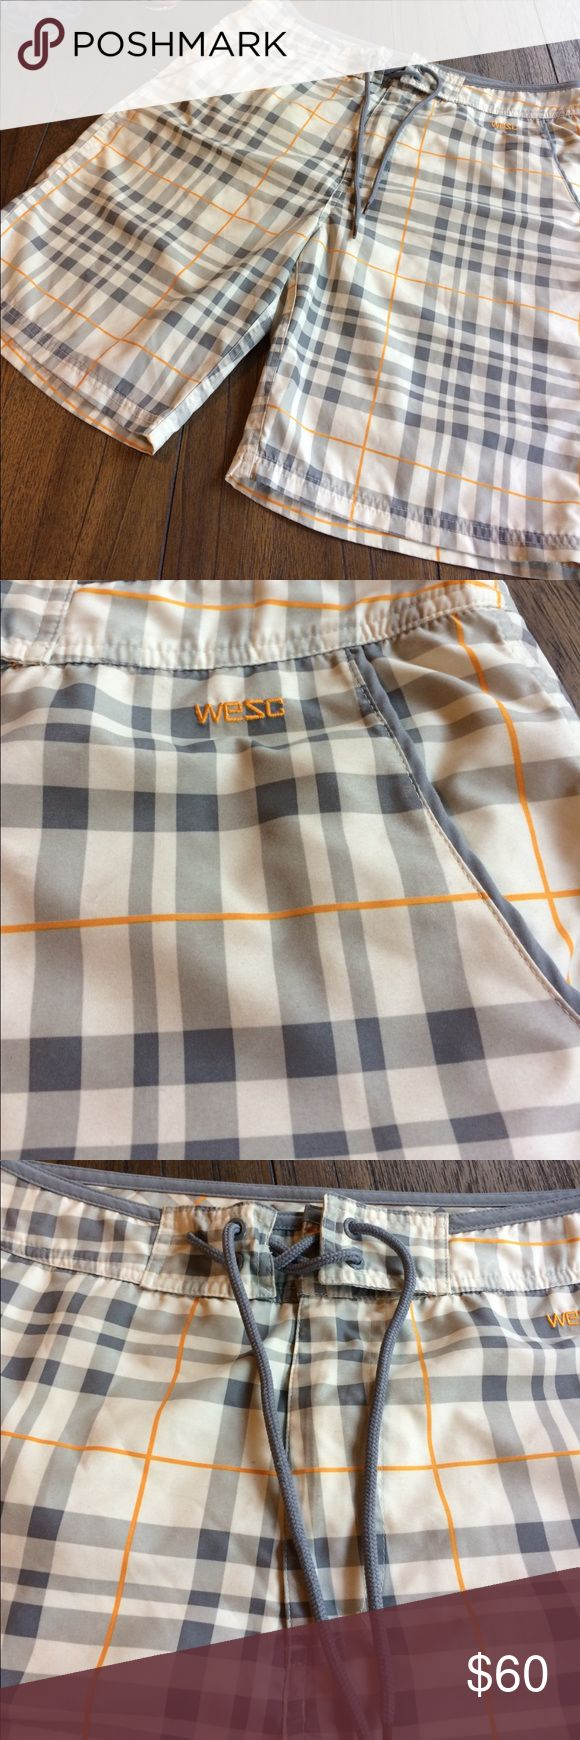 Wesc Board Shorts EUC--like new--never worn--WESC Board Shorts. Cream, grey & orange plaid pattern. Pockets at waist & Velcro slit pocket on the back. Has mesh inner brief to keep things in place. Zip fly with Velcro & tie. Interesting tie in that it comes through fabric & is stitched so you can't lose it--or your shorts while catching waves. Wesc Swim Board Shorts